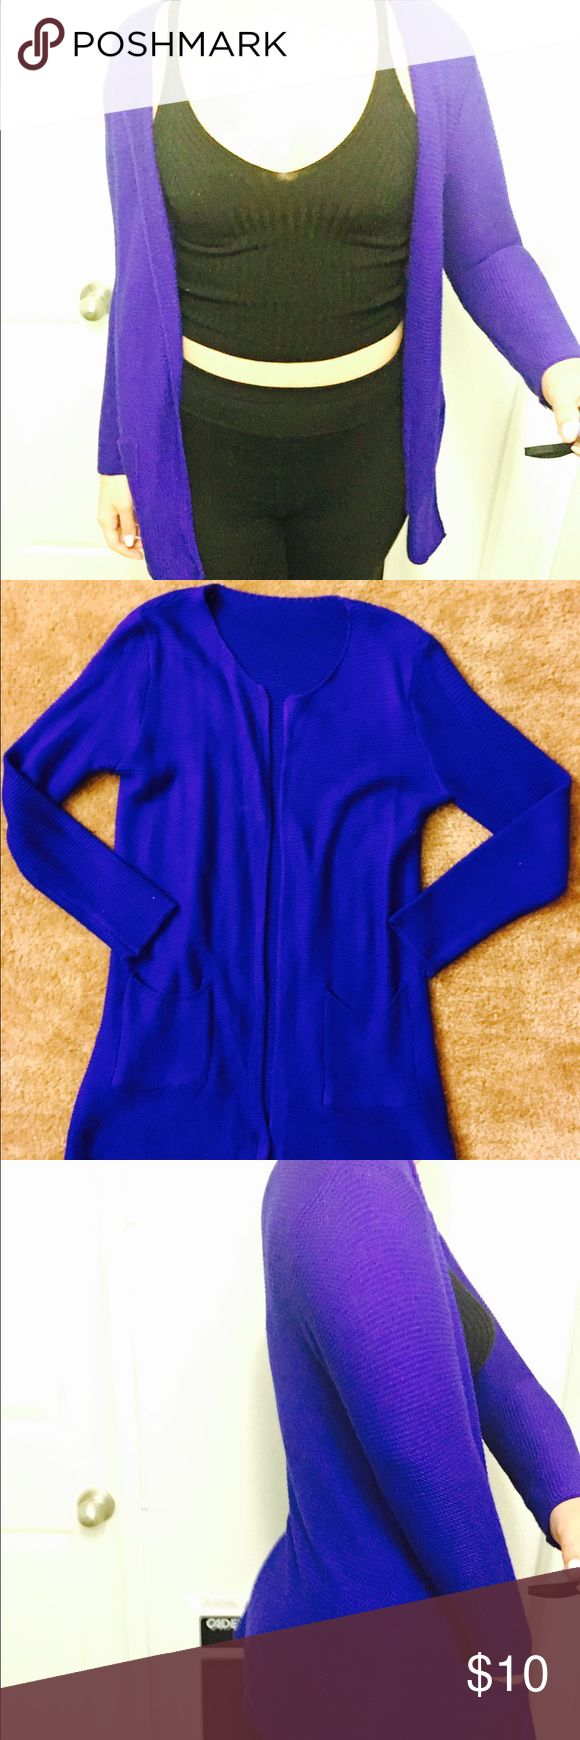 Blue round neck cardigan Super bold and bright royal blue cardigan with two front pockets Sweaters Cardigans